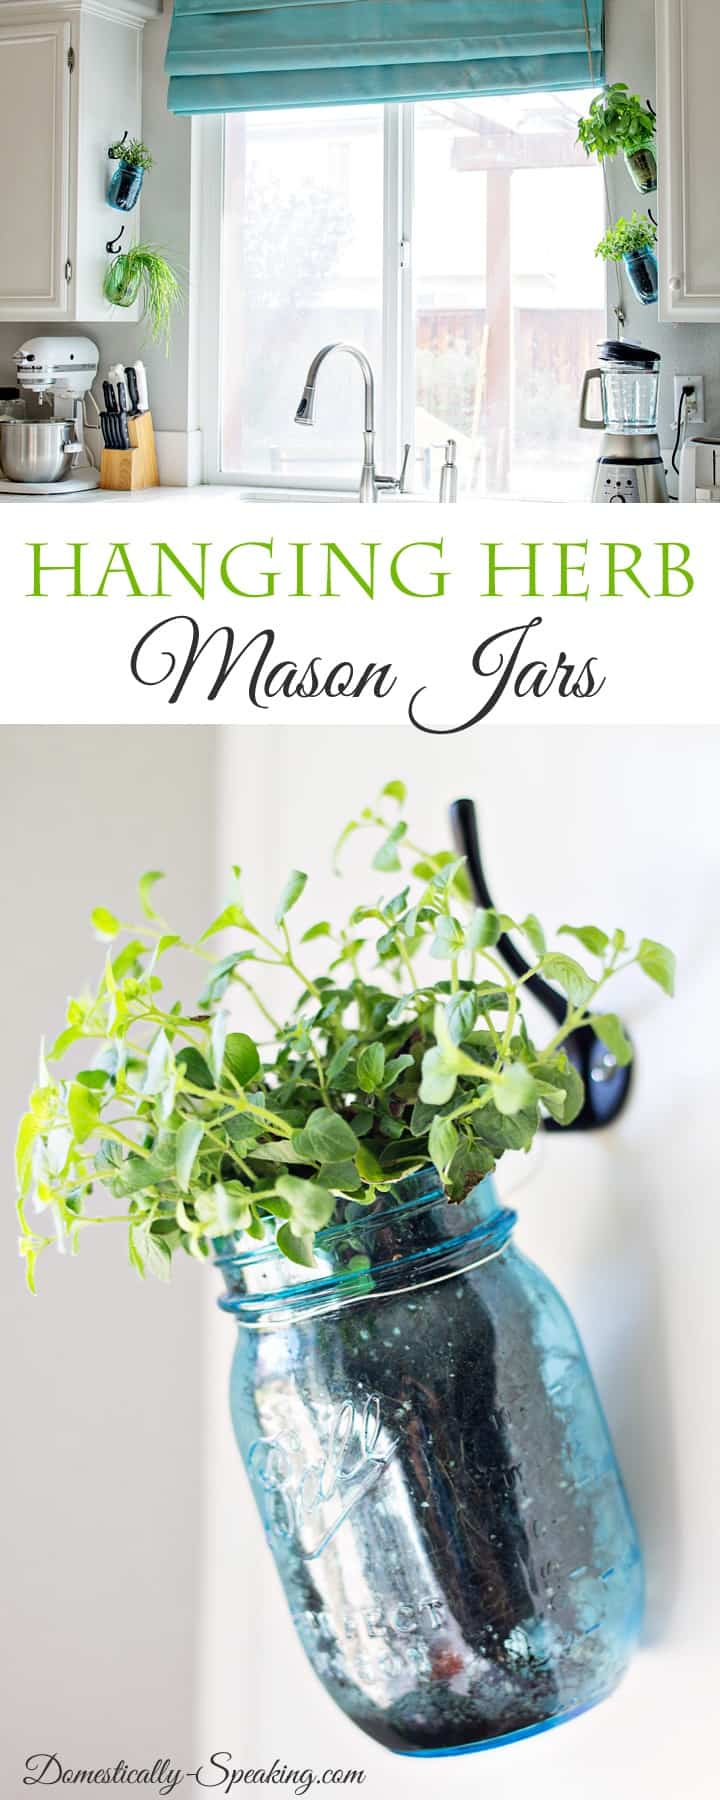 Hanging Fresh Herbs in Vintage Blue and Green Mason Jars - perfect way to have an indoor herb garden in your kitchen!